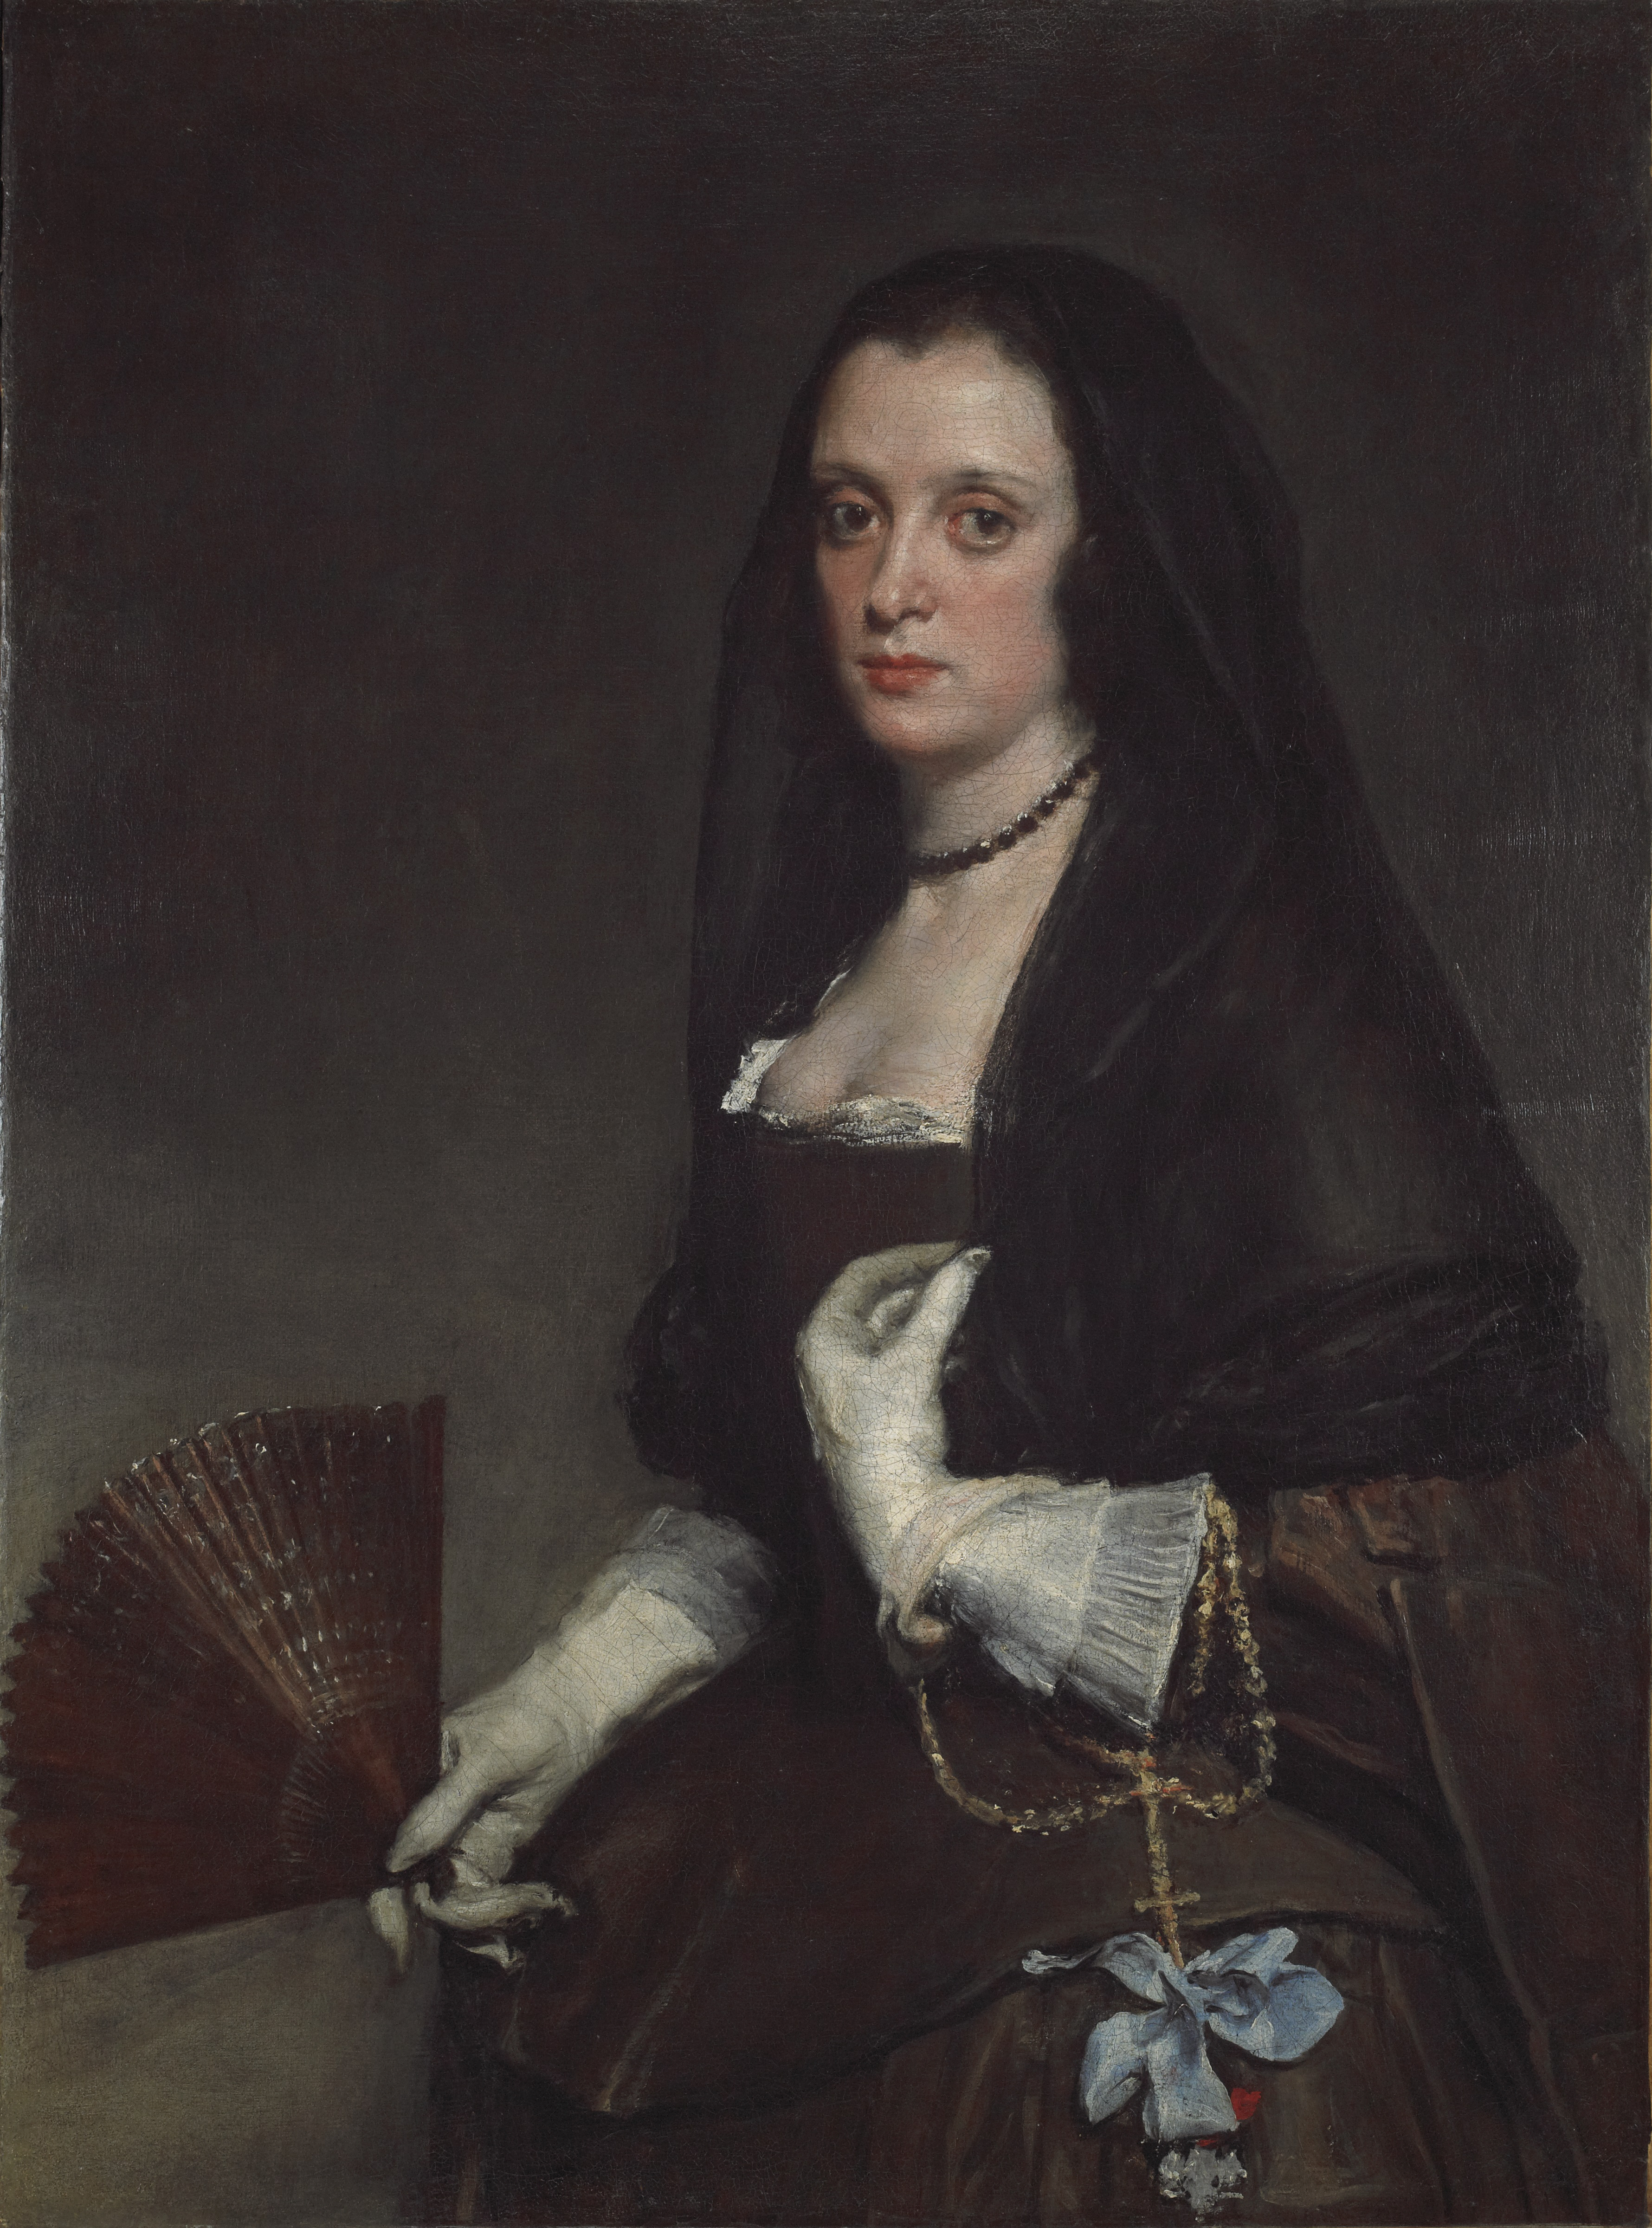 Diego Velázquez: The Lady with a Fan, oil on canvas, 95 x 70 cm, c. 1640, (London: The Wallace Collection, Object No. P88), image courtesy of The Wallace Collection